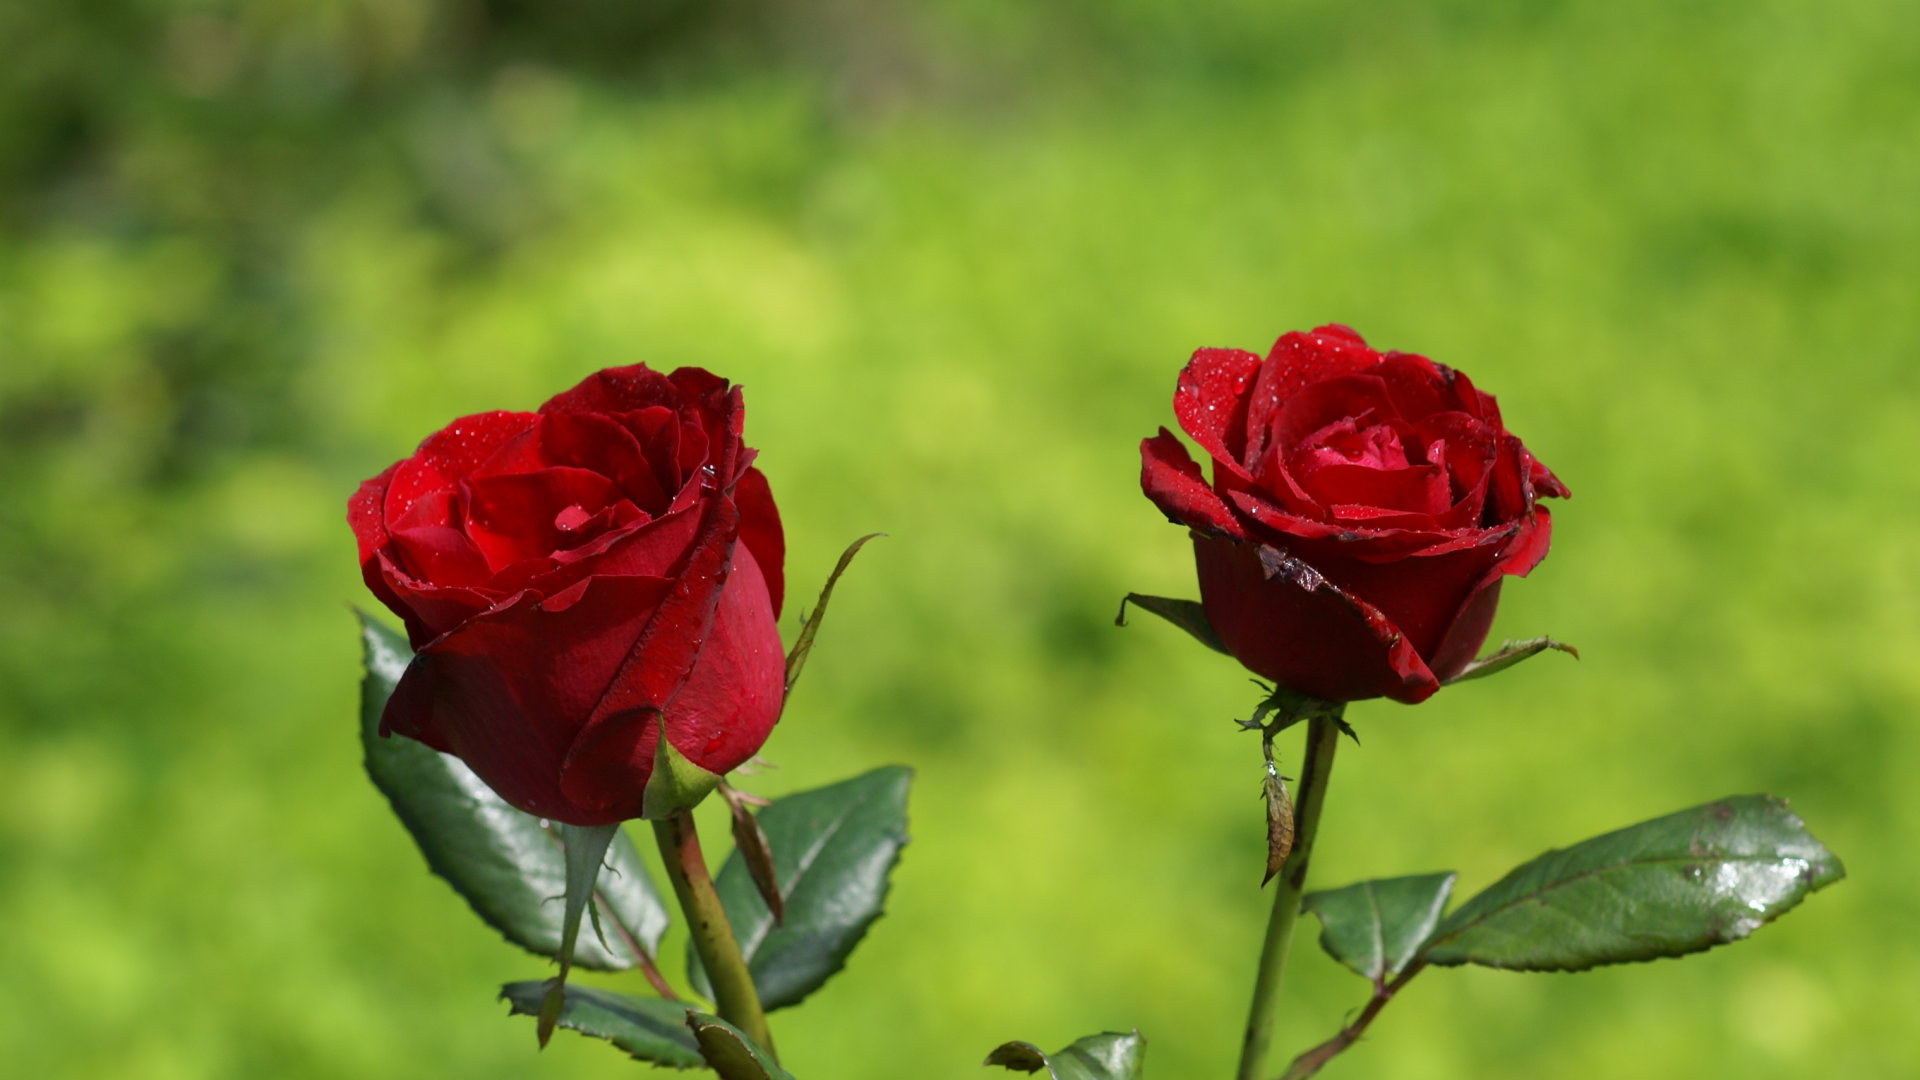 50 beautiful red rose images to download rose wallpaper hdtv 1920x1080 izmirmasajfo